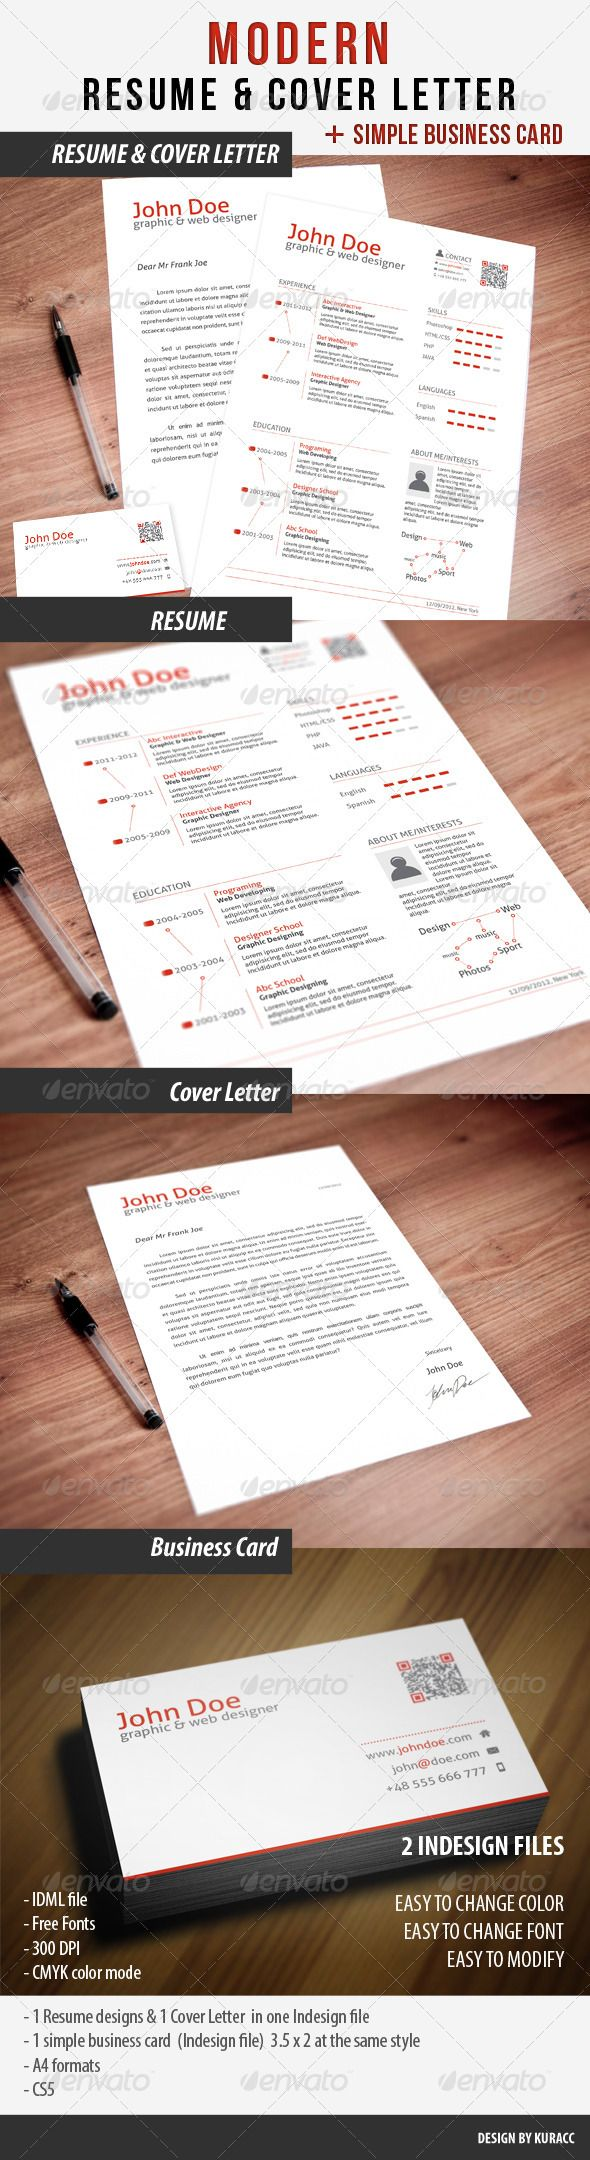 clean resume  u0026 cover letter  u0026 business card